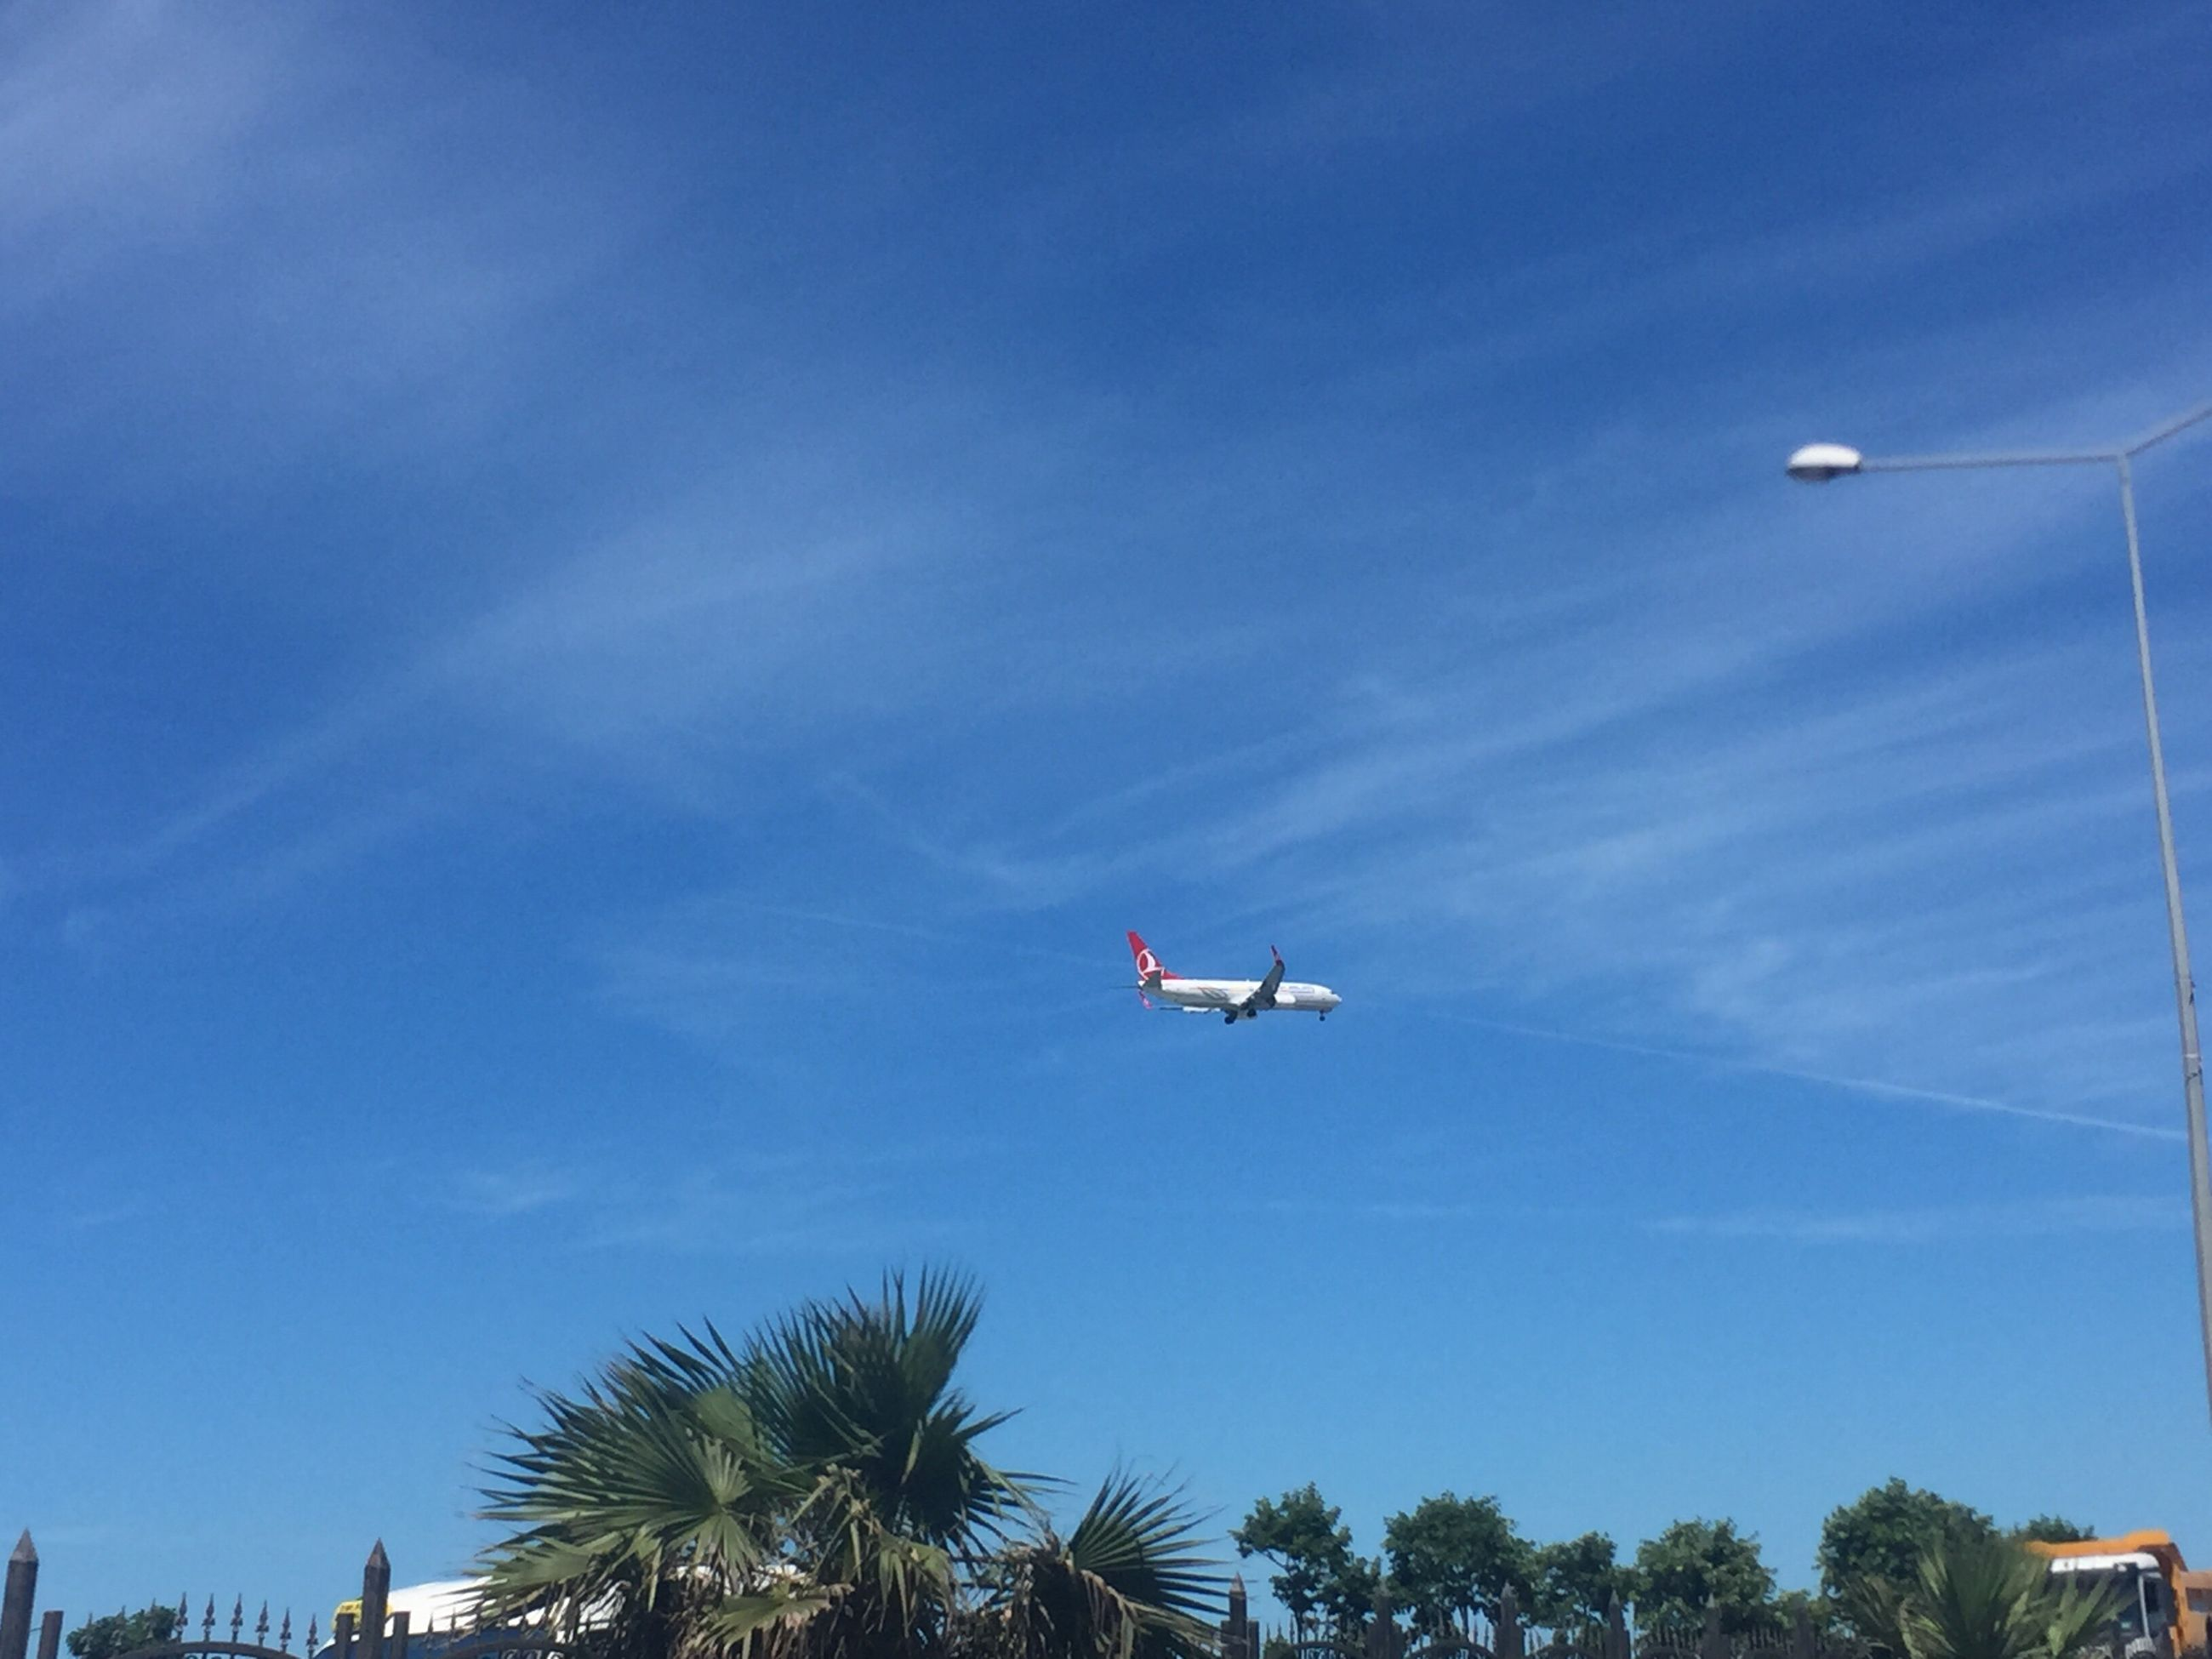 flying, low angle view, tree, airplane, sky, palm tree, blue, day, mid-air, transportation, air vehicle, outdoors, no people, nature, beauty in nature, vapor trail